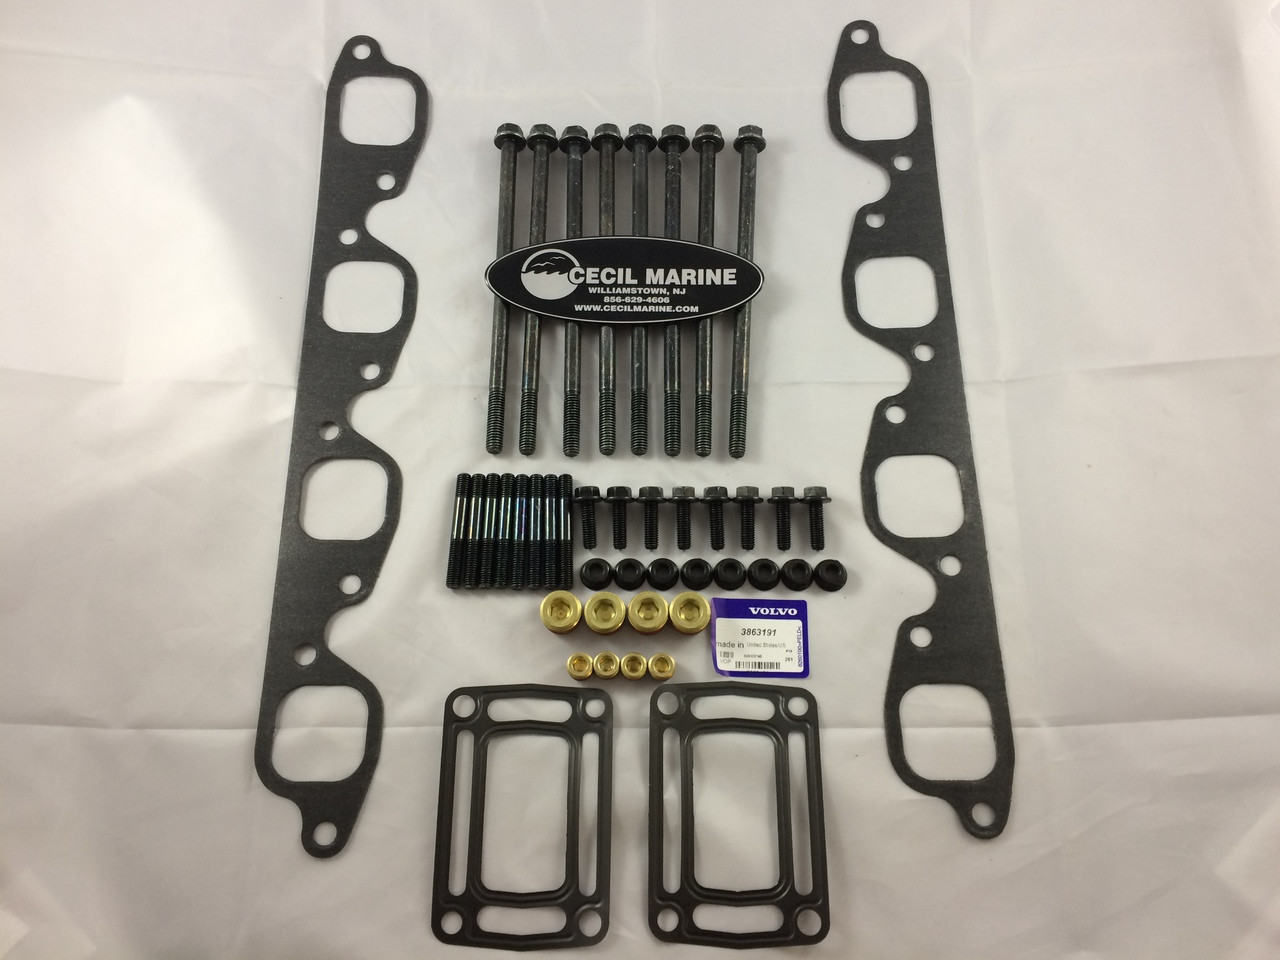 $1872.00 & FREE SHIPPING VOLVO PENTA 8.1 MANIFOLD REPLACEMENT KIT - 3847640  ** GENUINE VOLVO PENTA *** EXHAUST MANIFOLD ** In Stock & Ready To Ship!